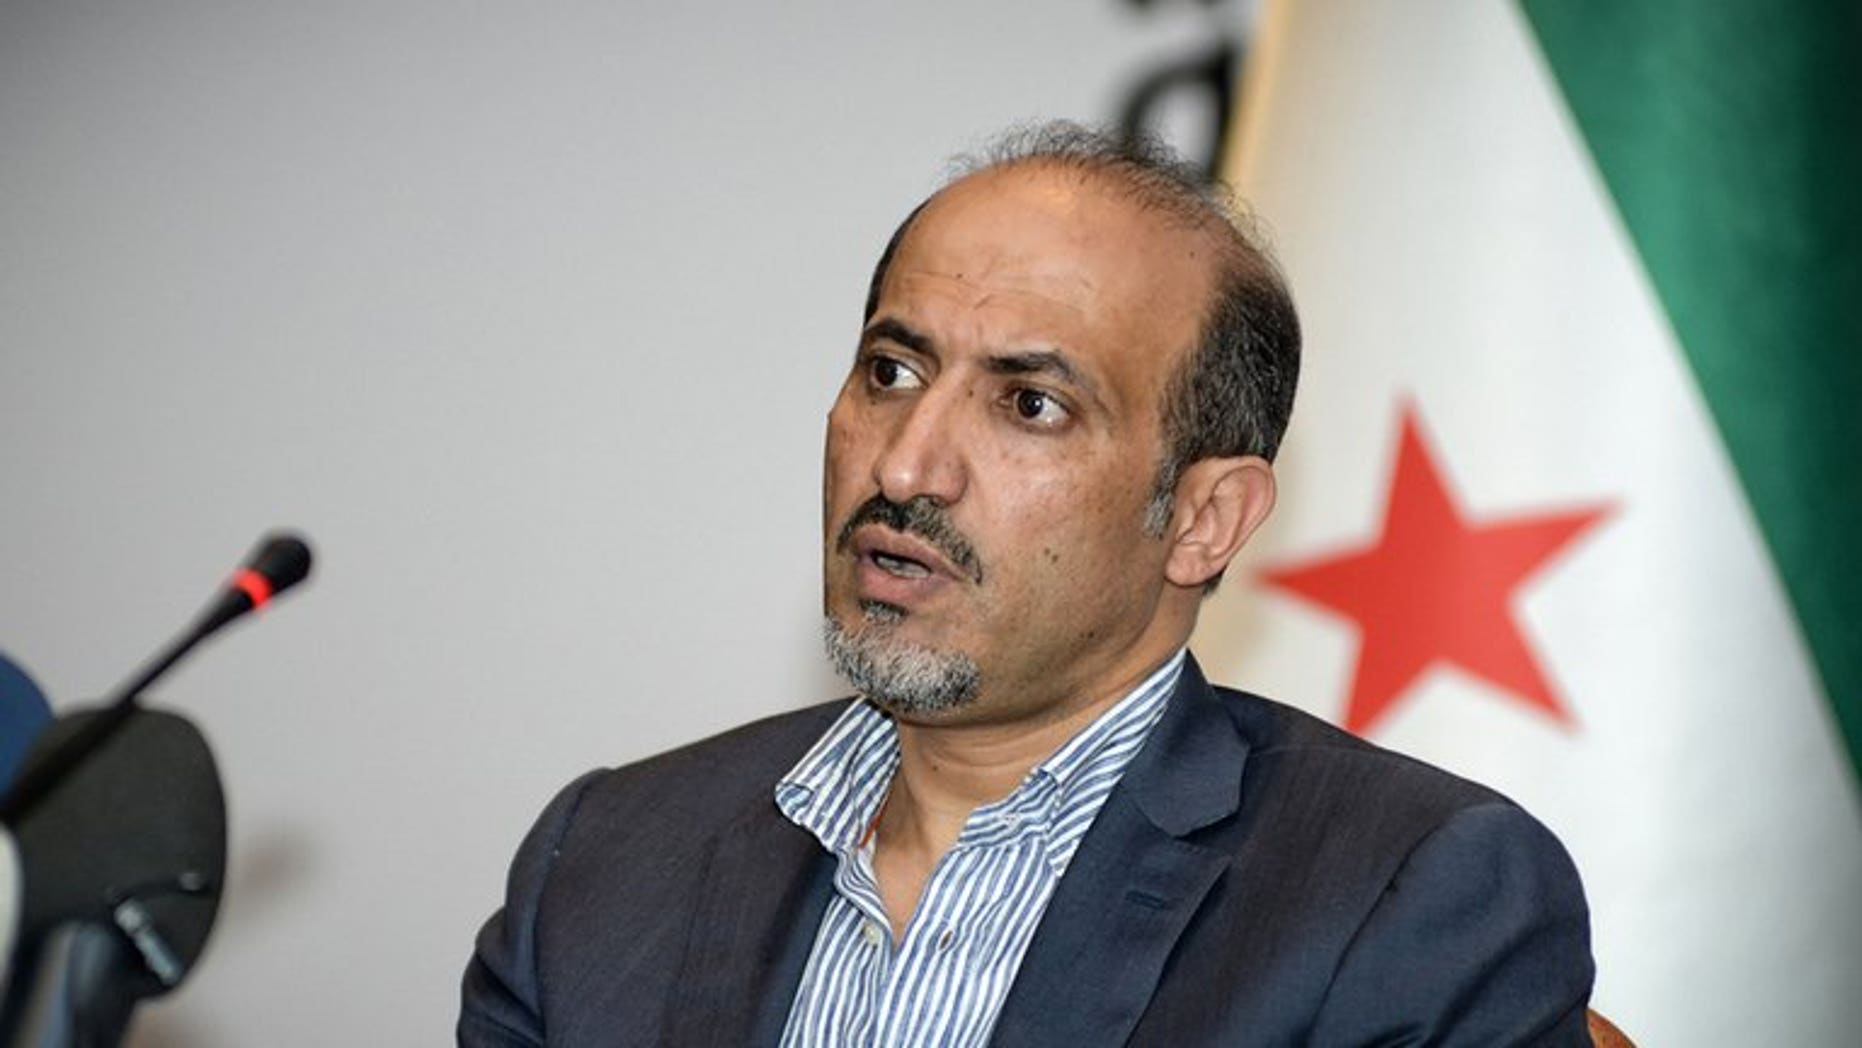 A handout photo taken and provided on July 9, 2013 shows Syrian National Coalition (SNC) leader Ahmad al-Assi attending a meeting in Istanbul. Jarba has set his priority on securing arms for rebels fighting regime troops since 2011.